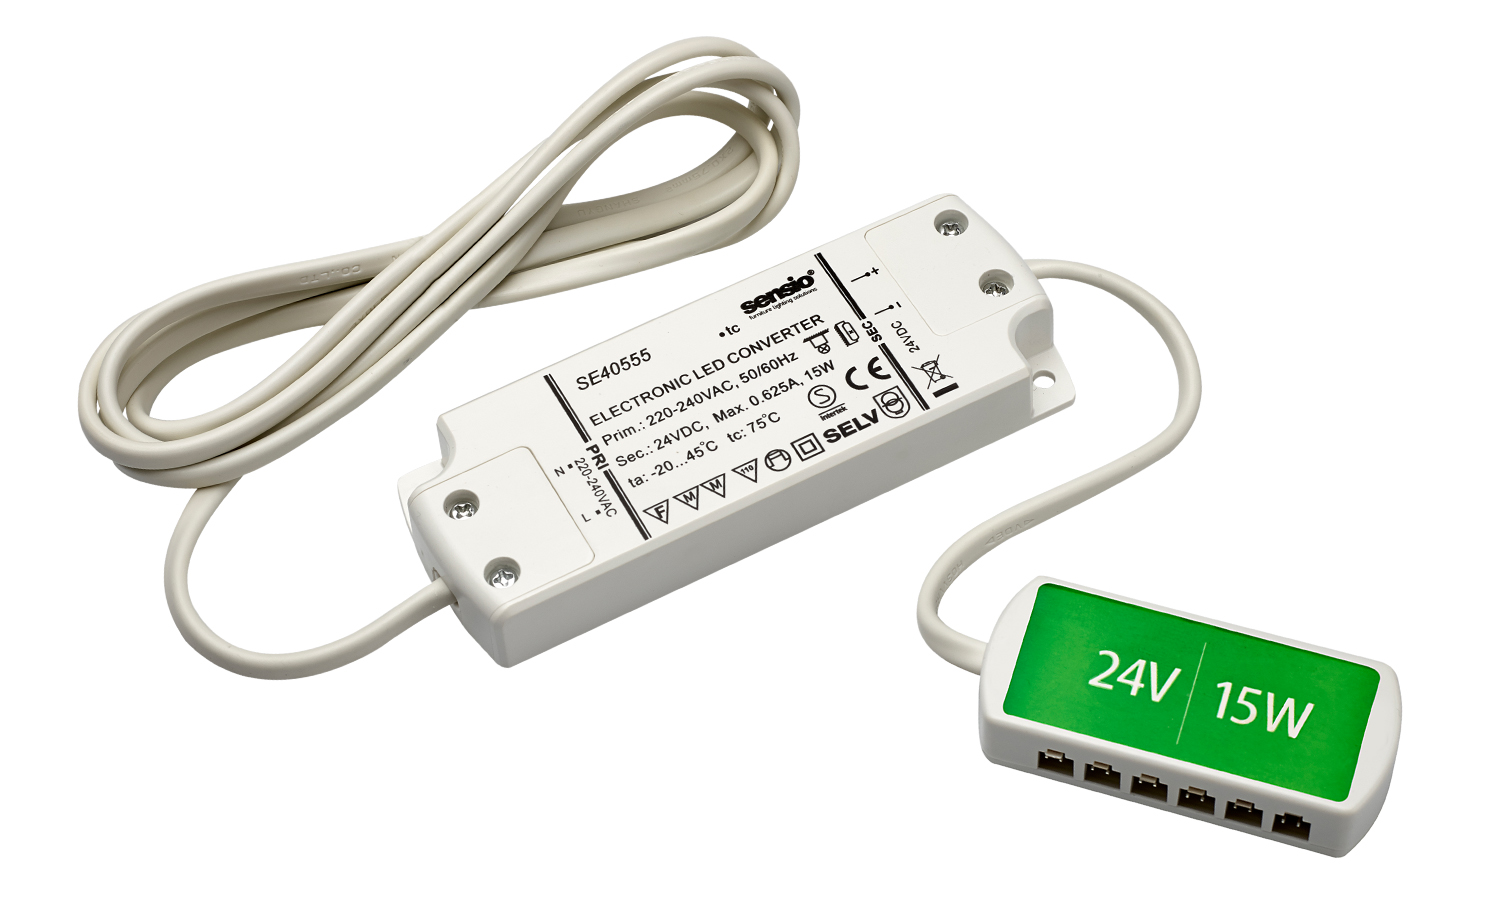 HD LED Driver, 6 port, 15W. (Can be used for 24 Volt applications)